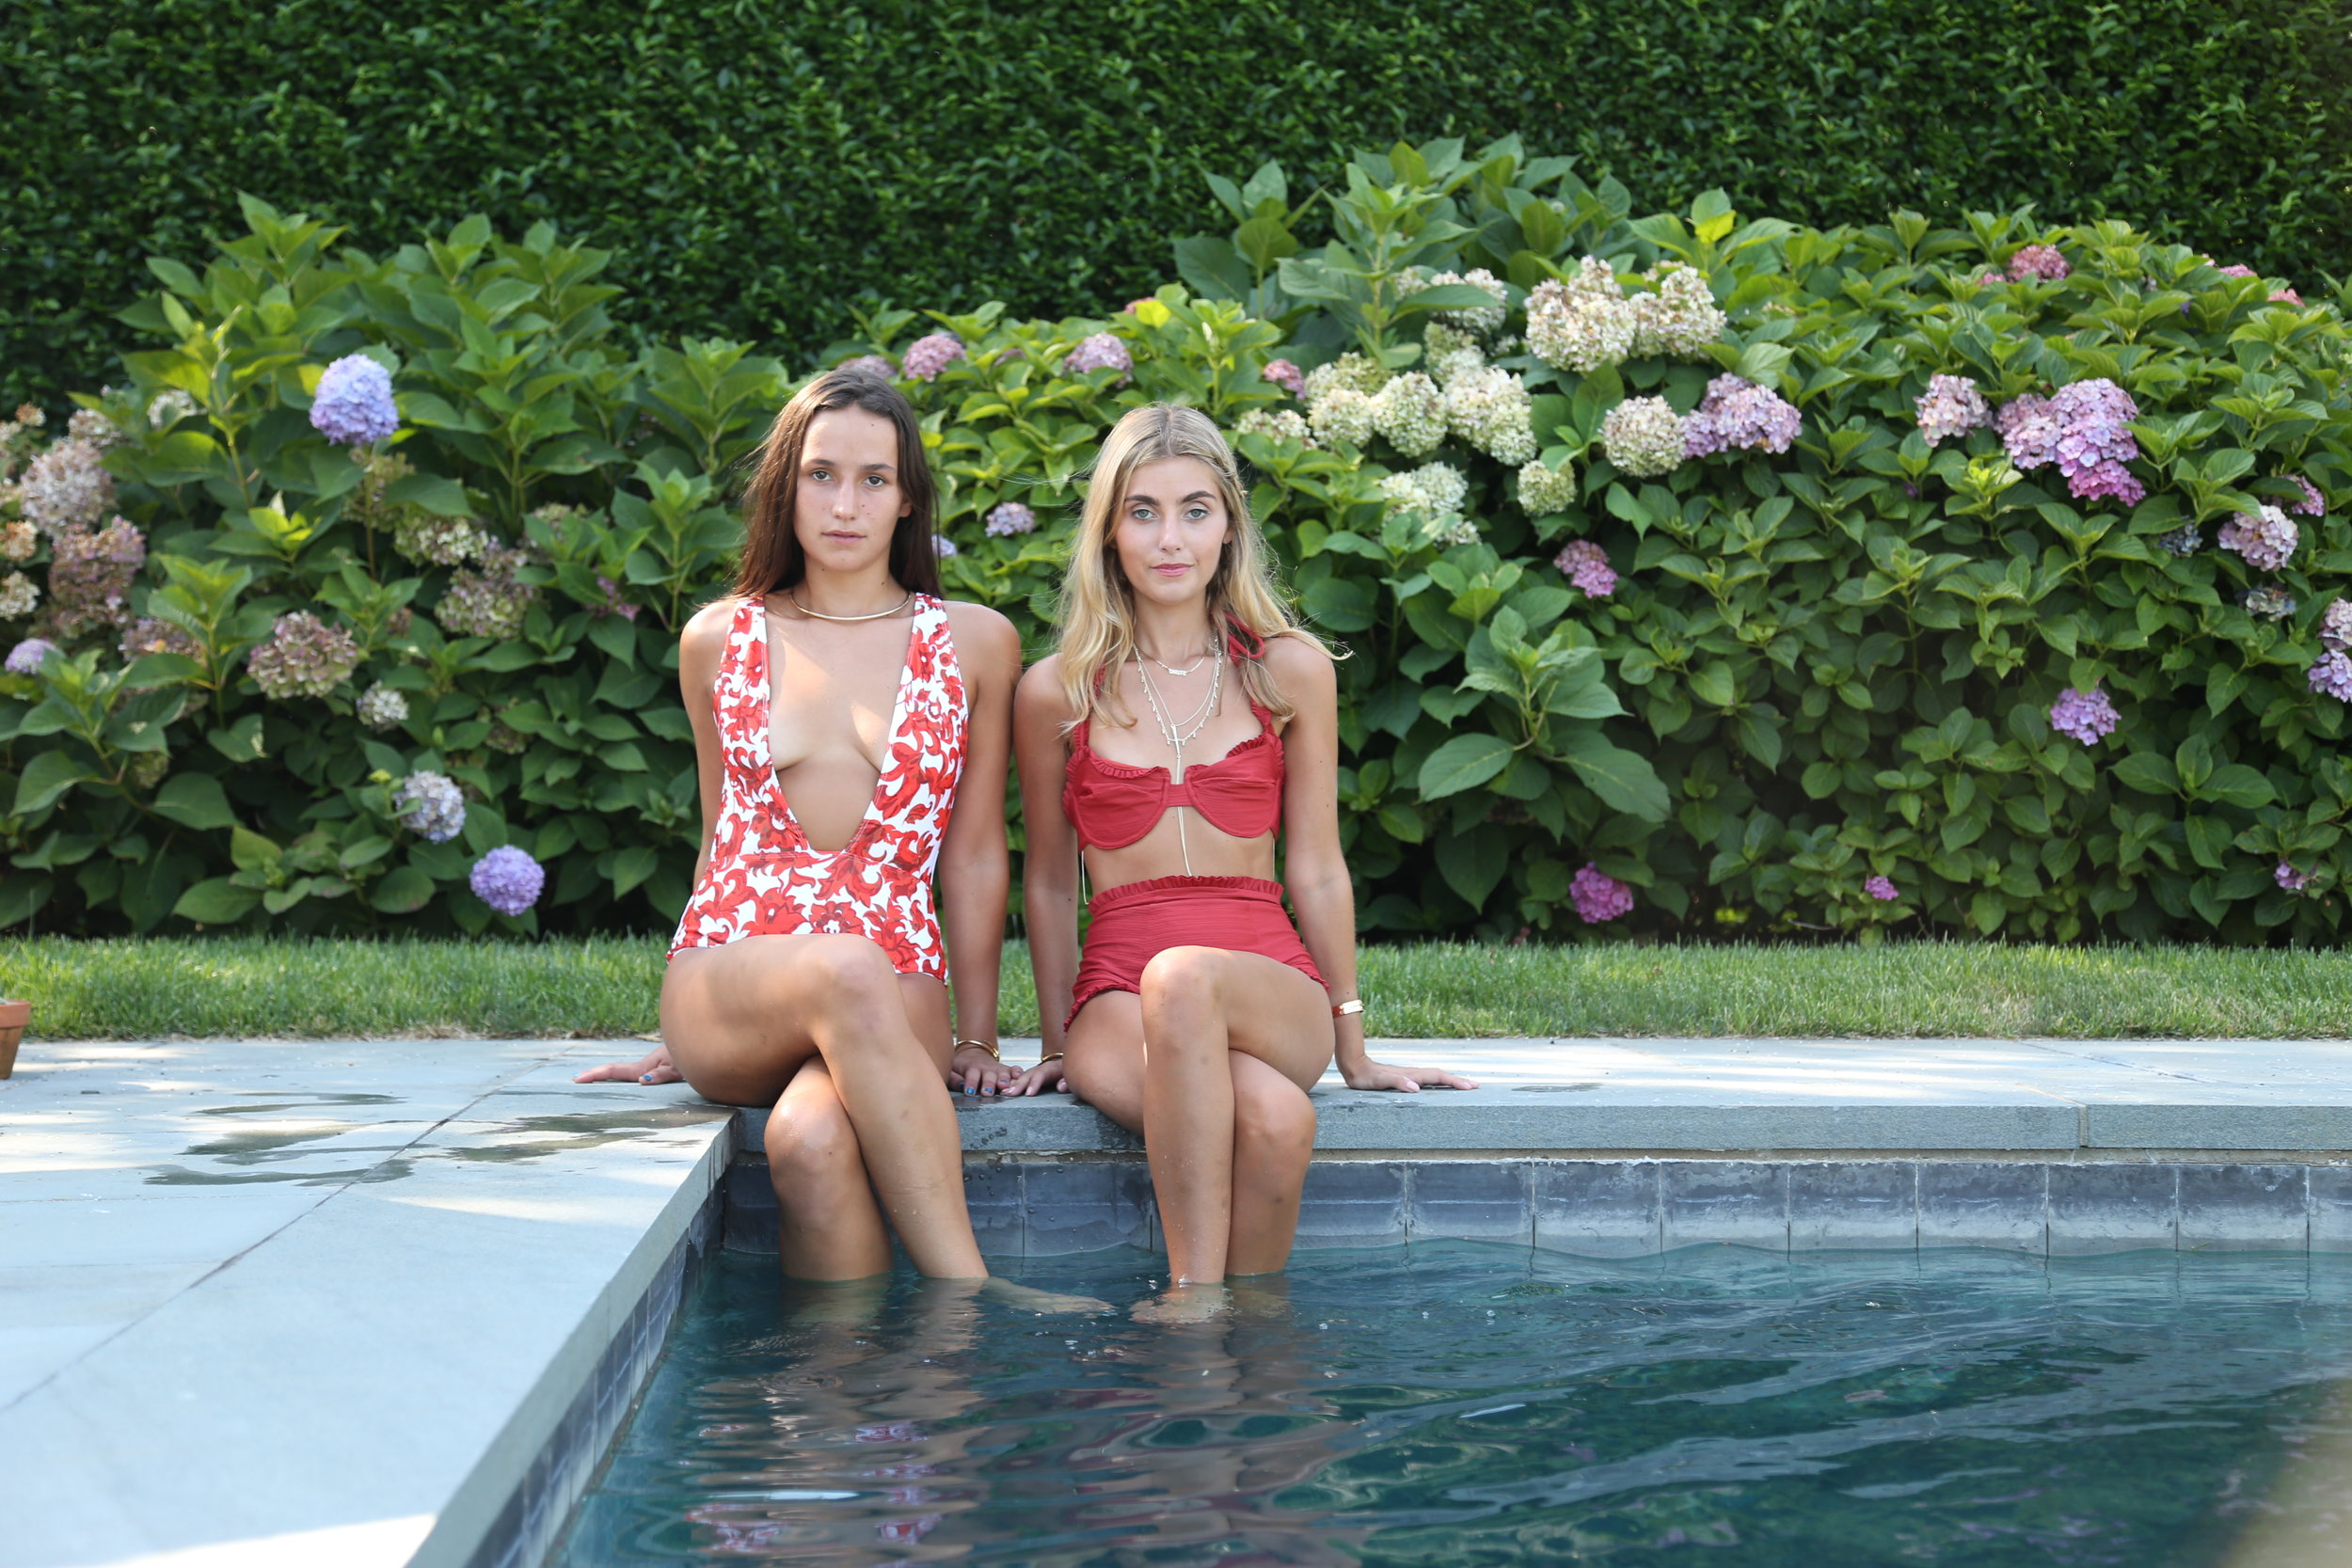 YIN 2MY YANG SISTER BLOGGERS SOPHIE AND CHARLOTTE BICKLEY BATHING SUIT POSTS NYC HAMPTONS FASHION